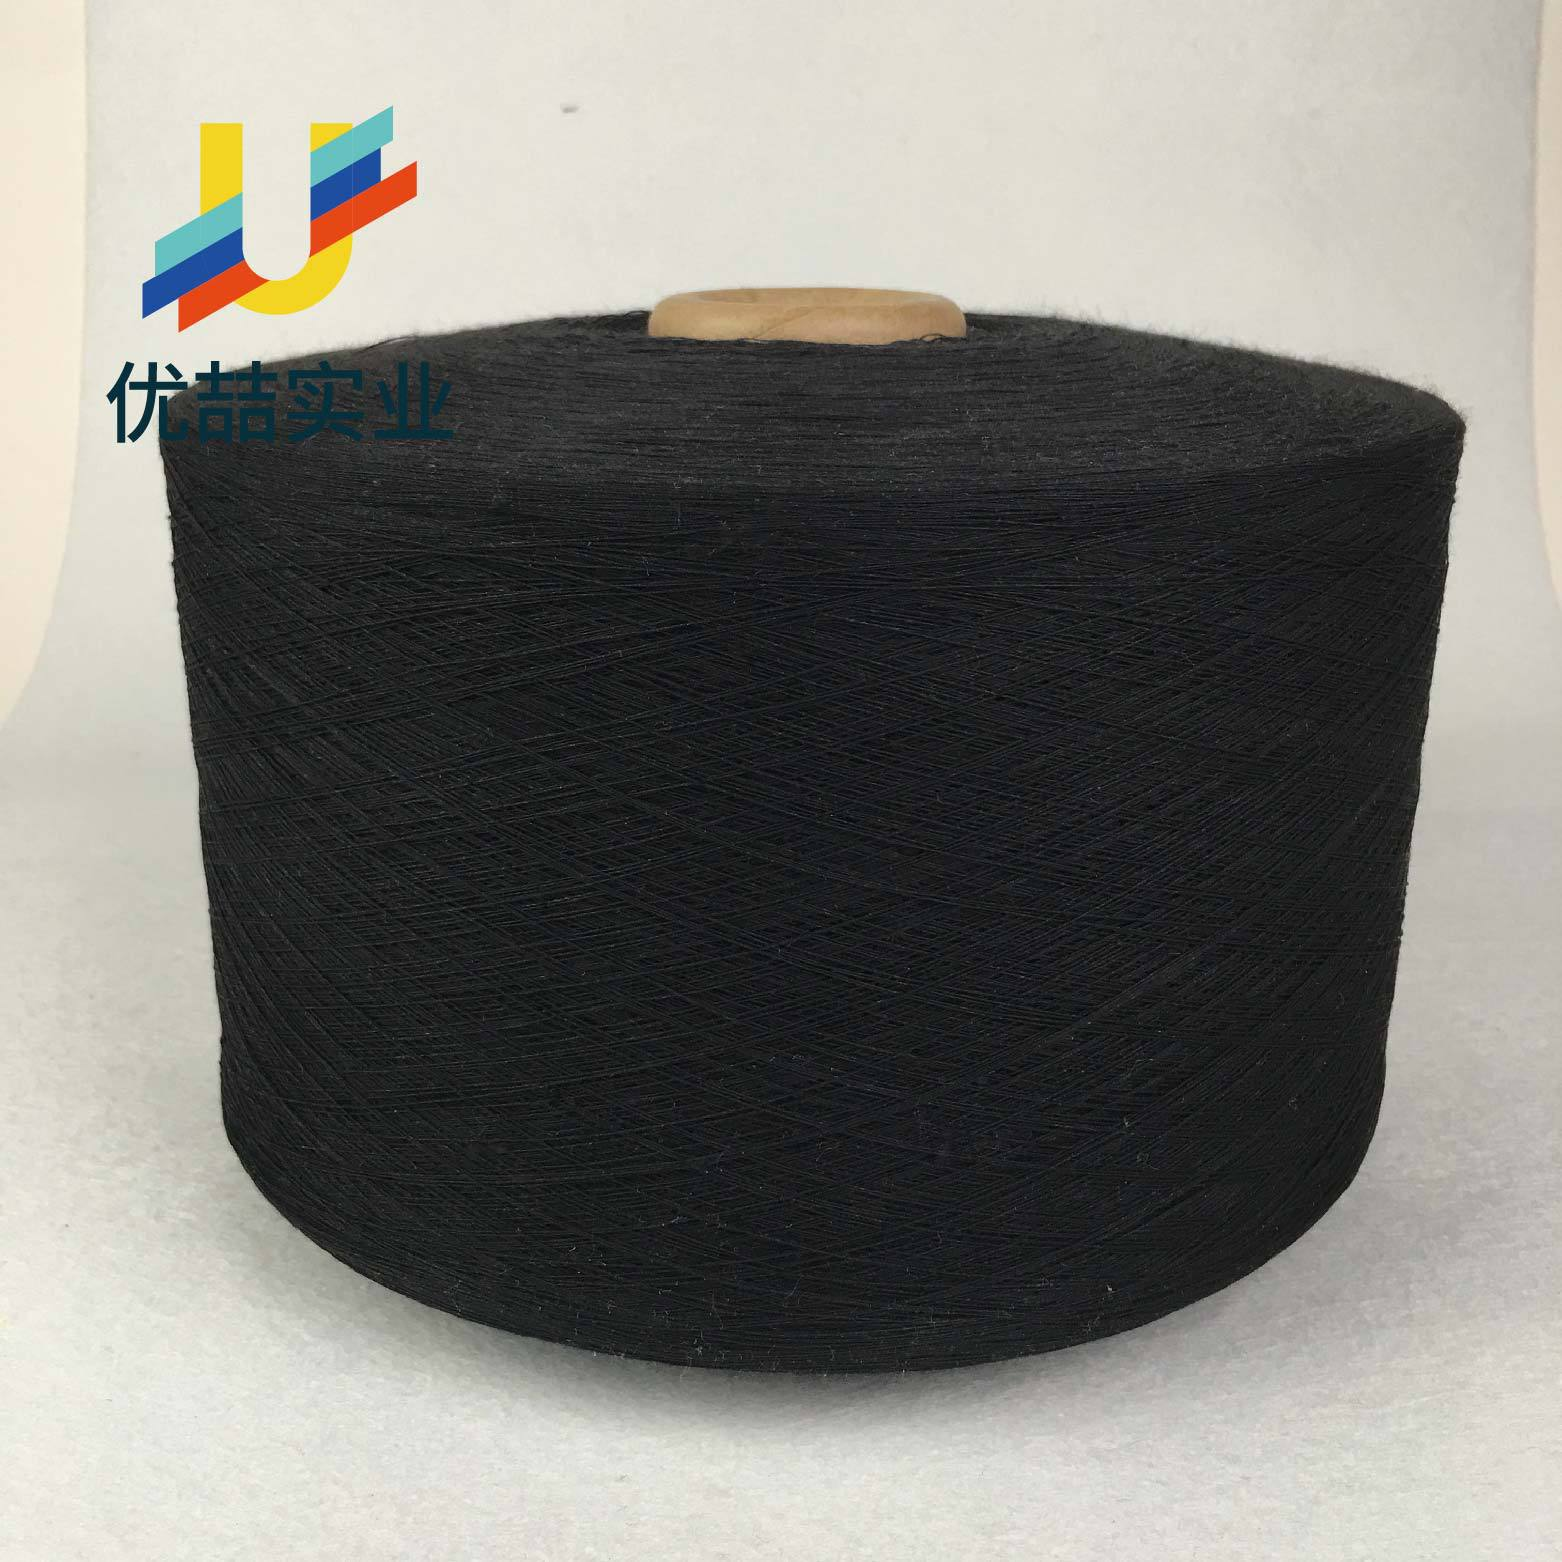 1-21 counts of black air-flow cotton spinning, high- and low-tube polyester-cotton yarn, sewing and